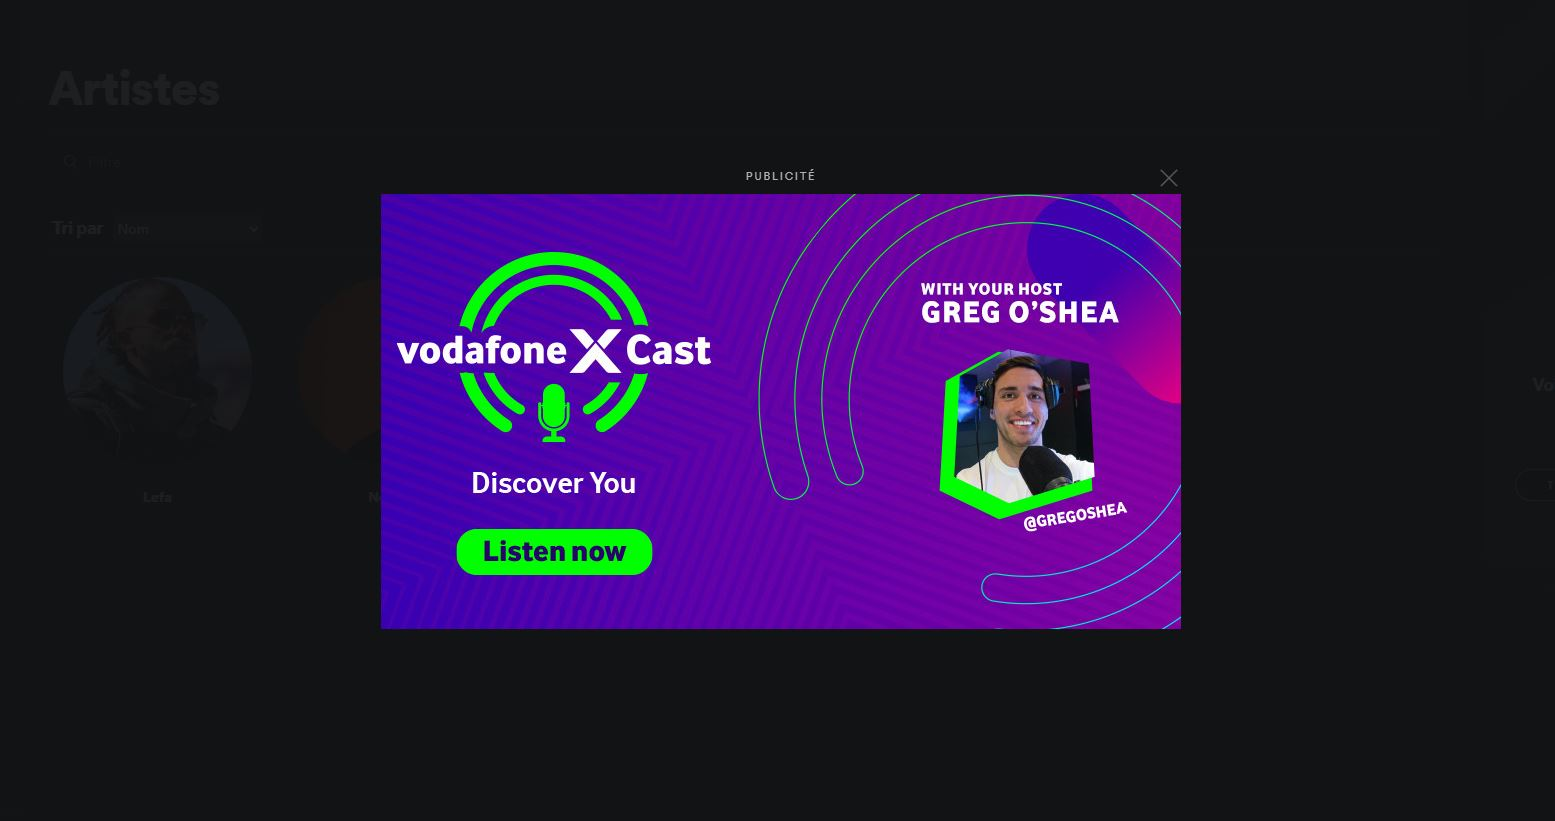 overlay ouverture spotify